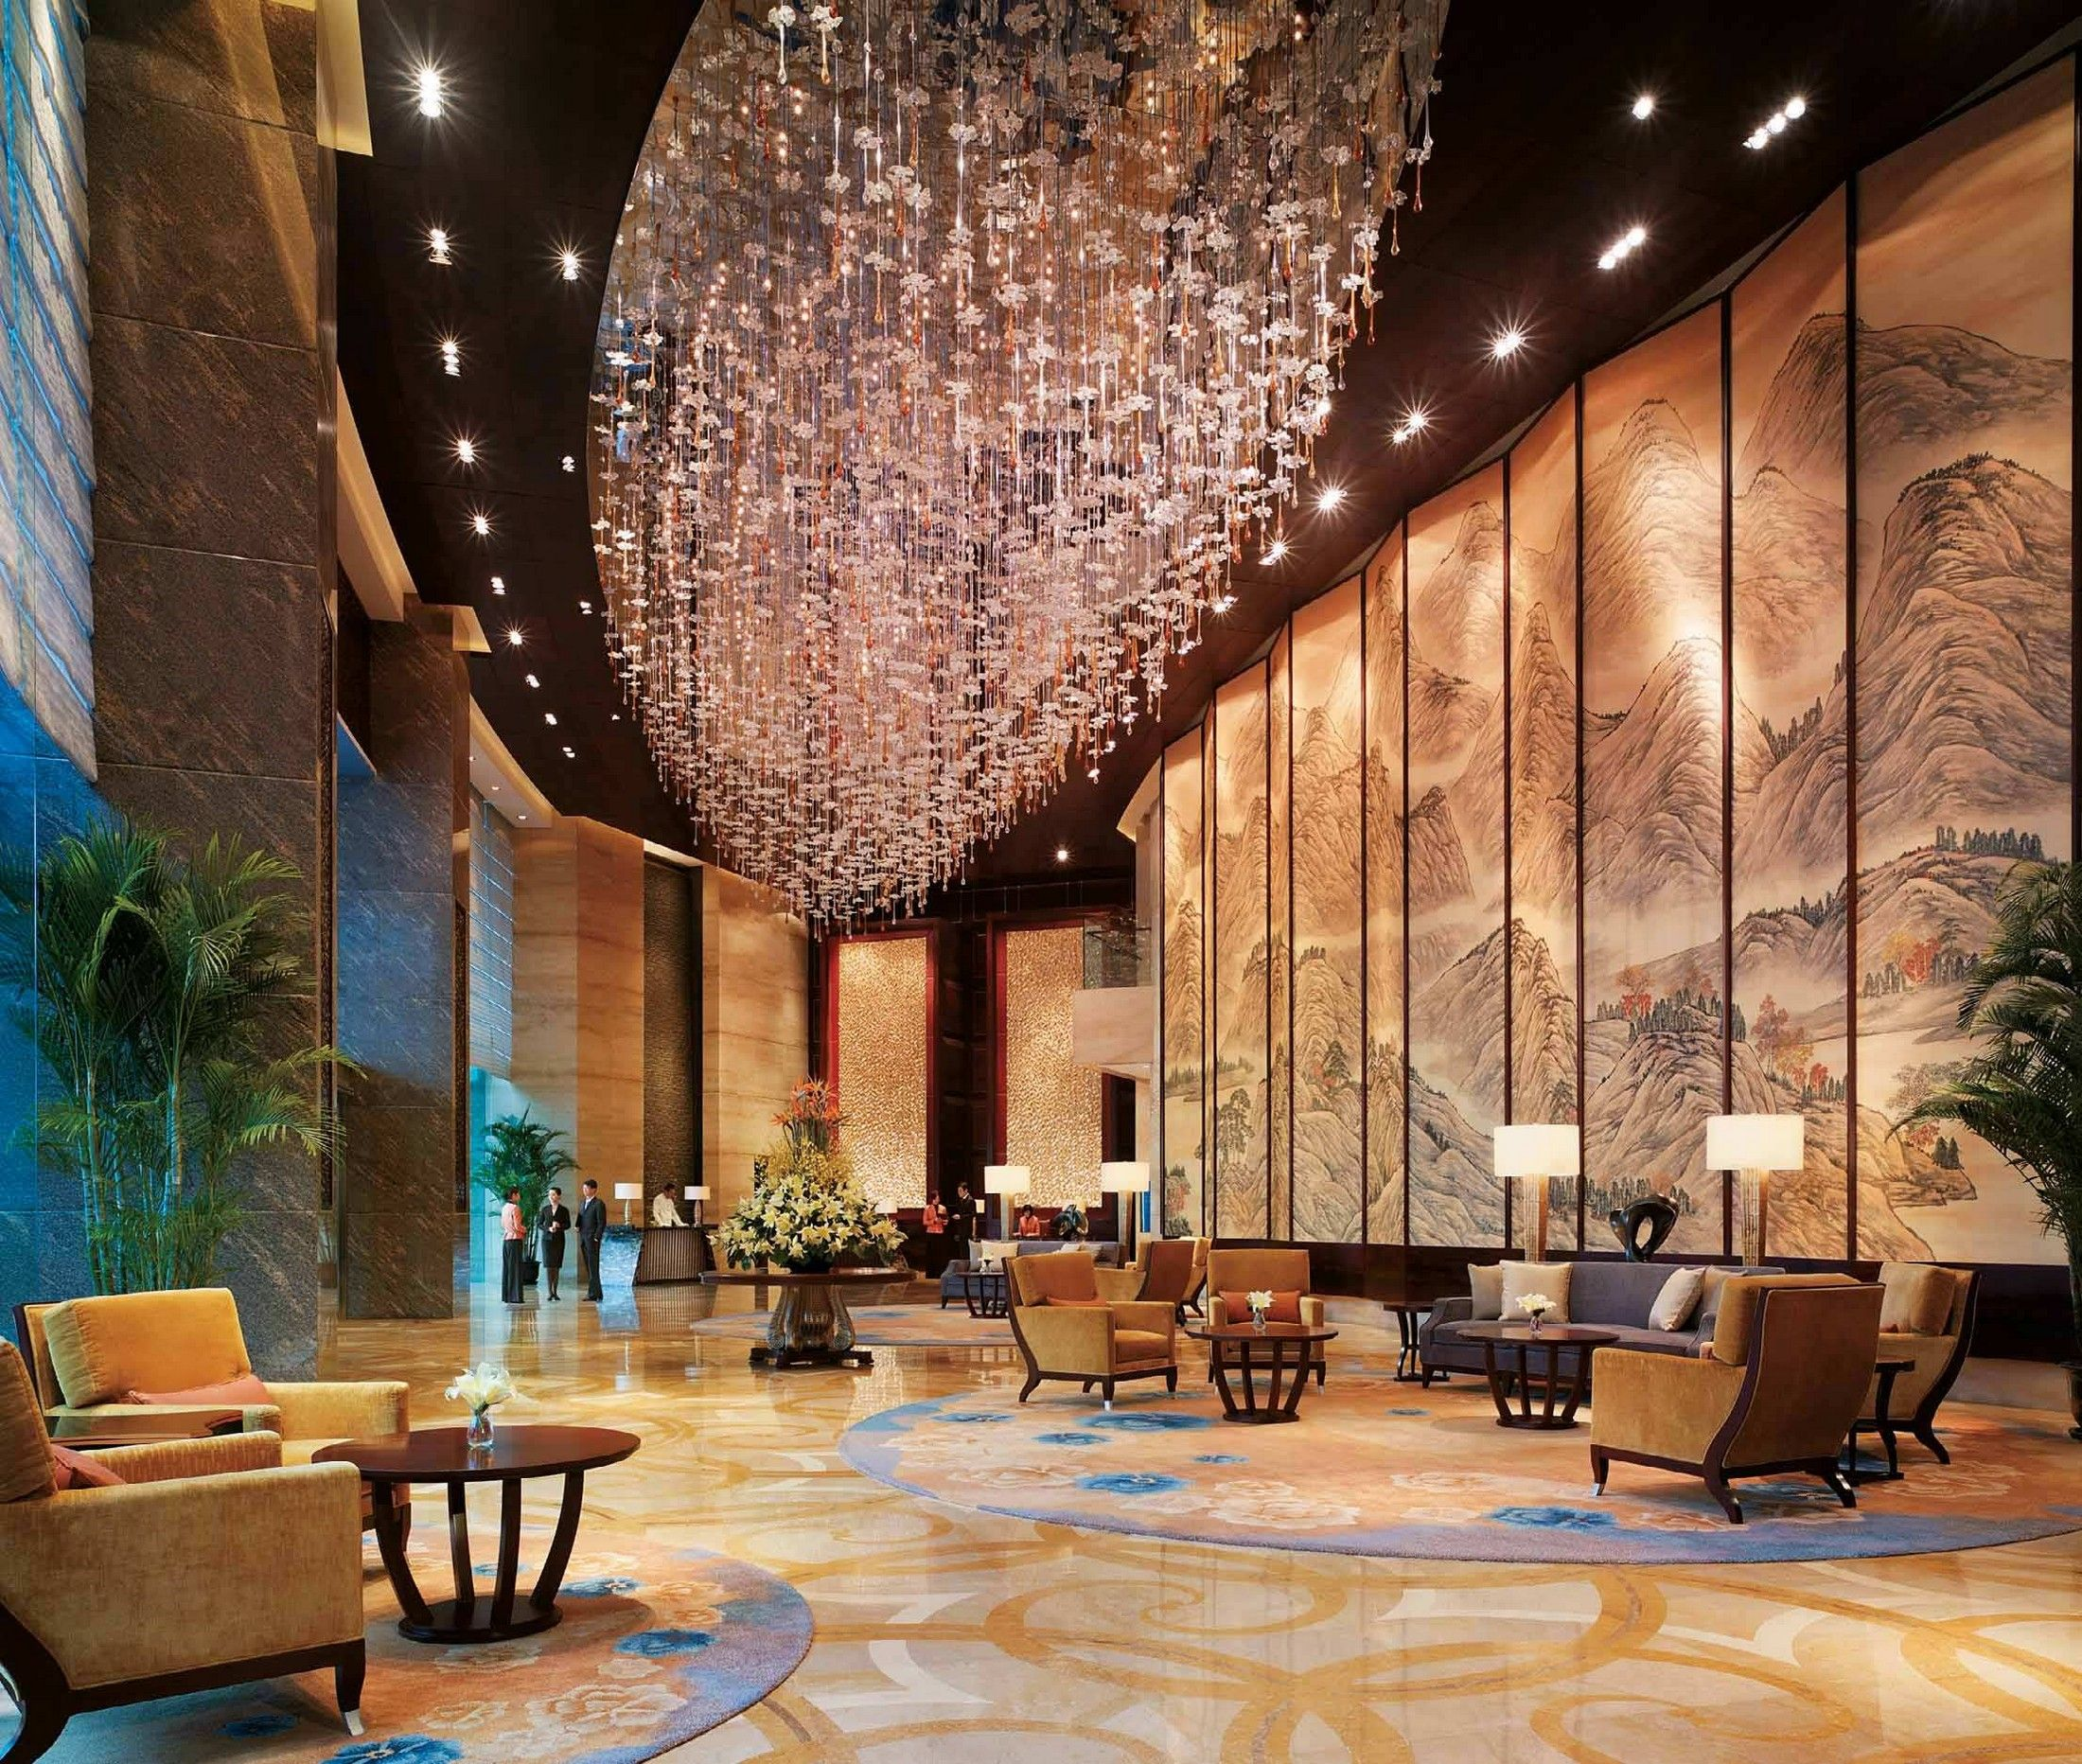 Shangri La Hotel In Qingdao China Architecture Hotel